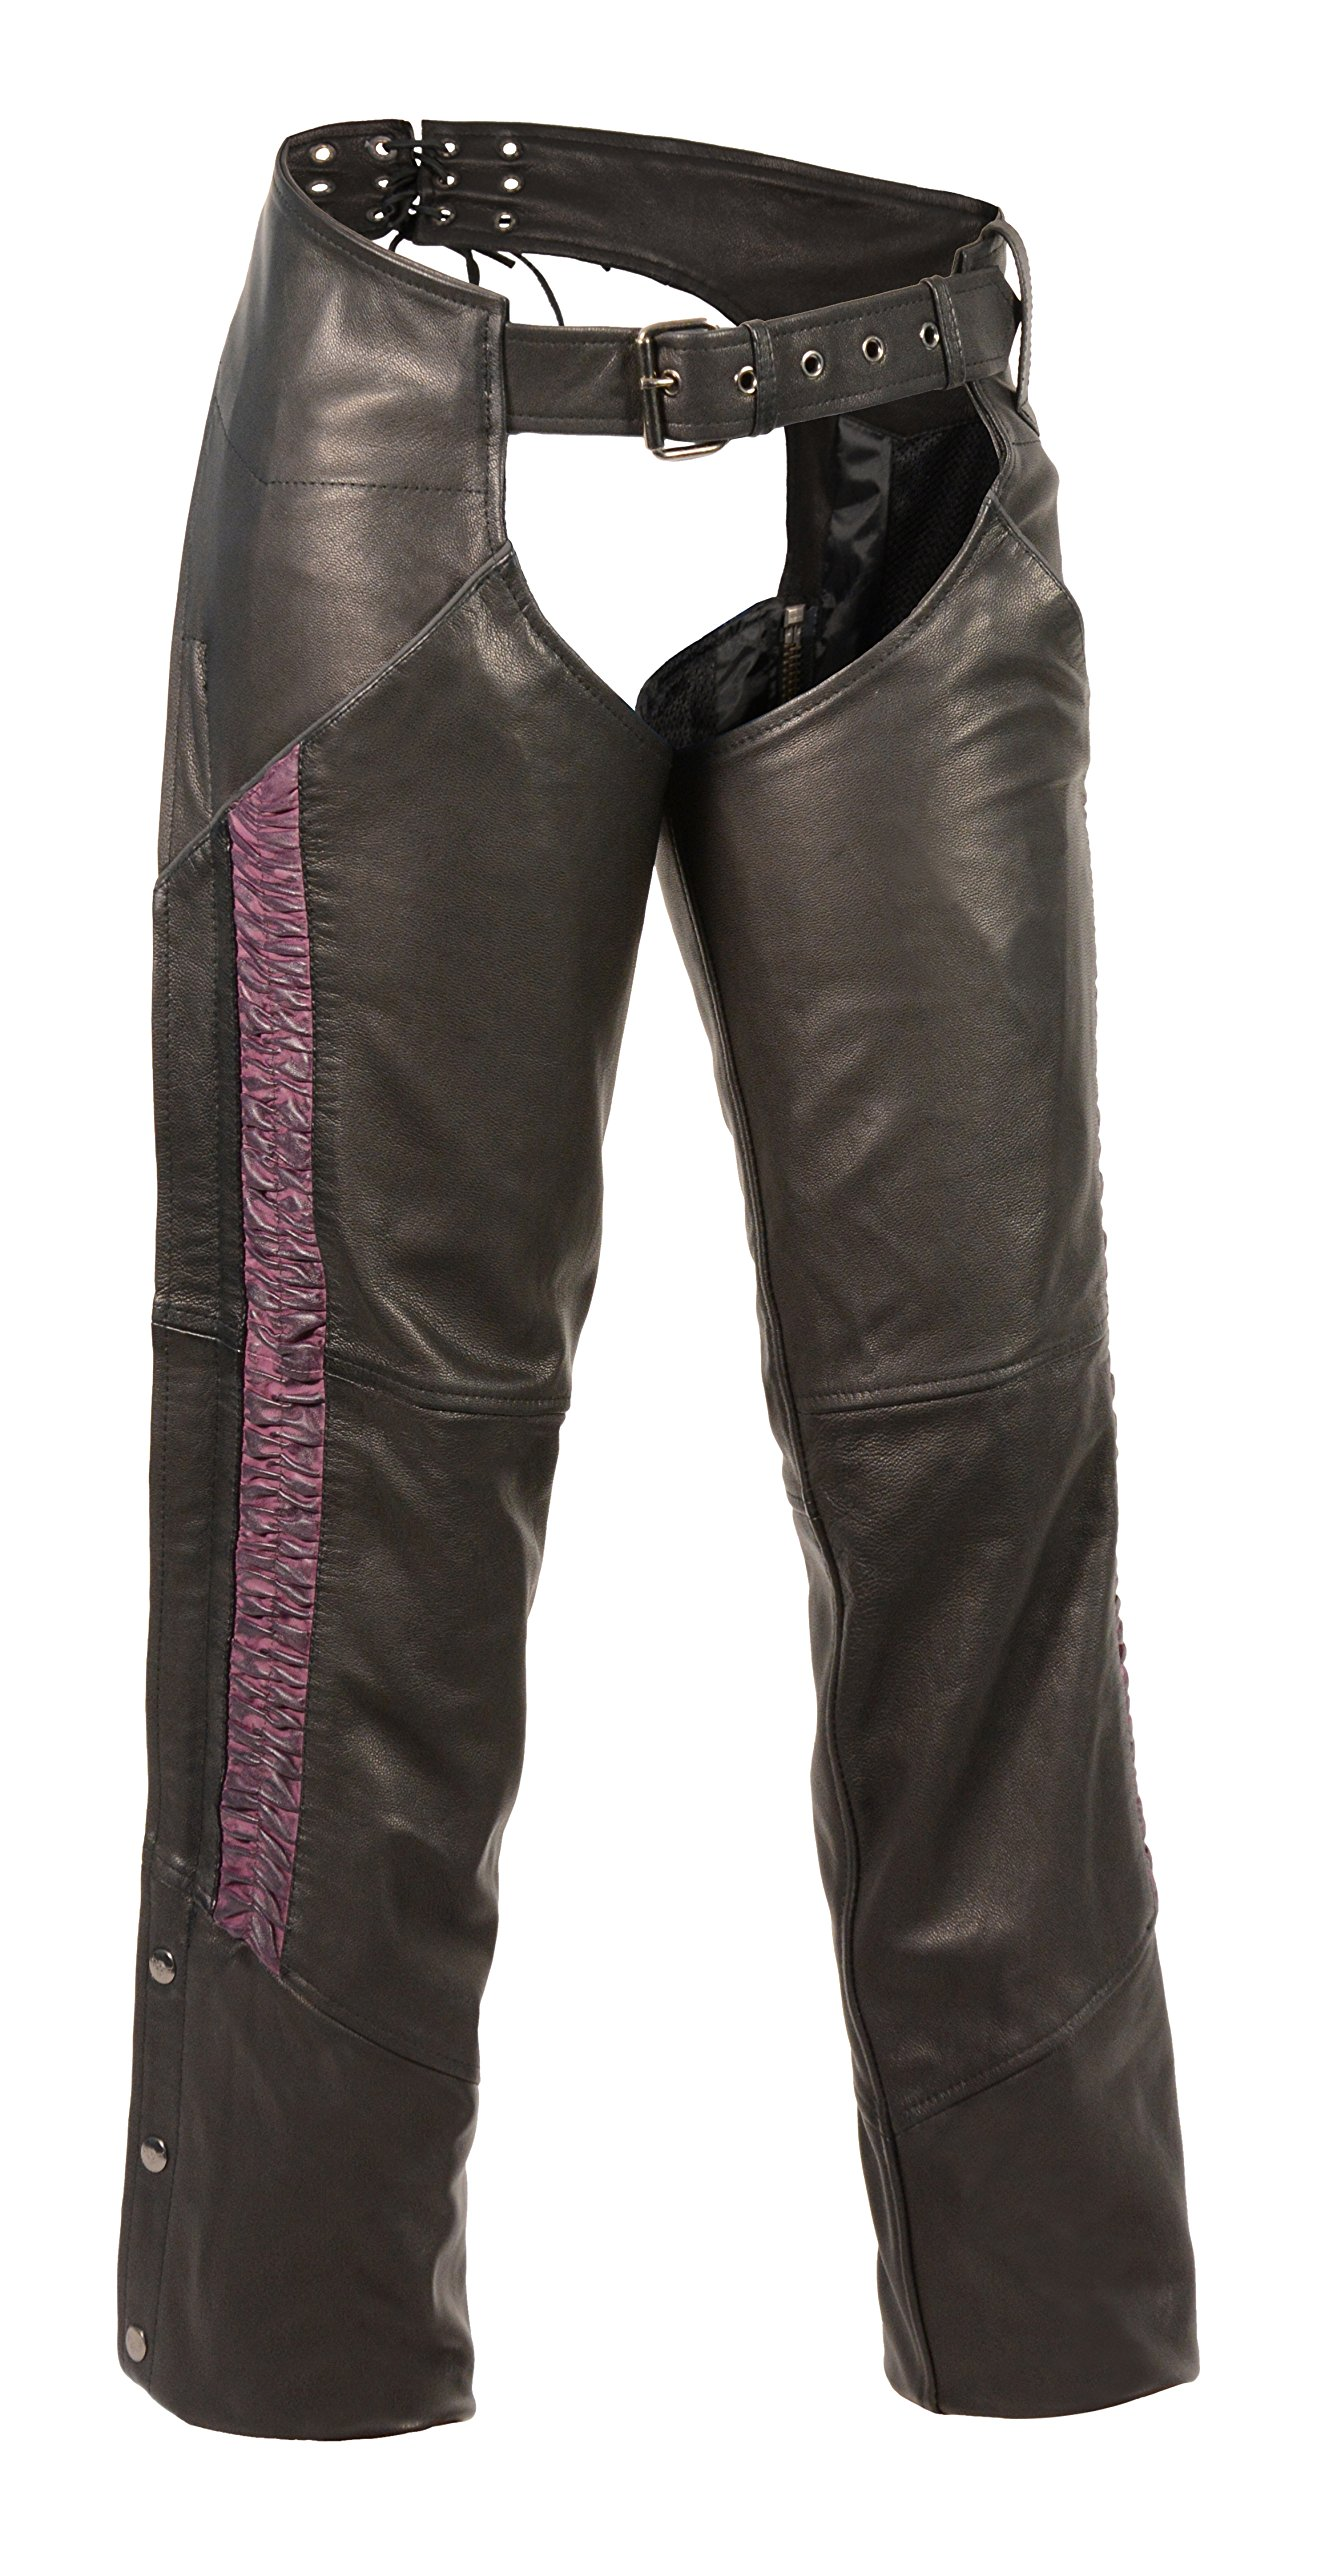 Milwaukee Leather Women's Lightweight Chap with Crinkled Leg Striping (Black/Purple, 4X-Large)